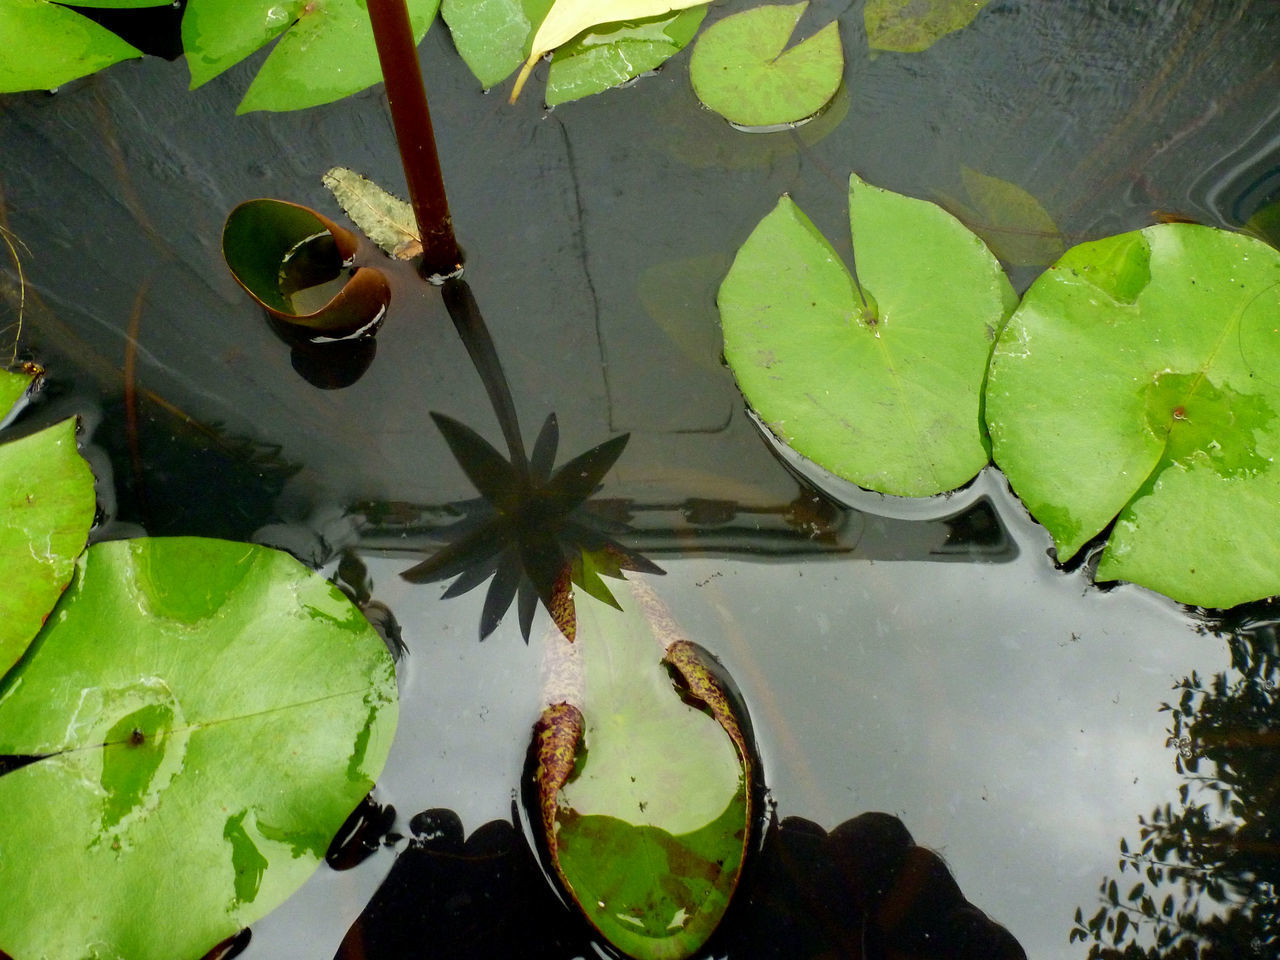 HIGH ANGLE VIEW OF LEAVES FLOATING IN POND